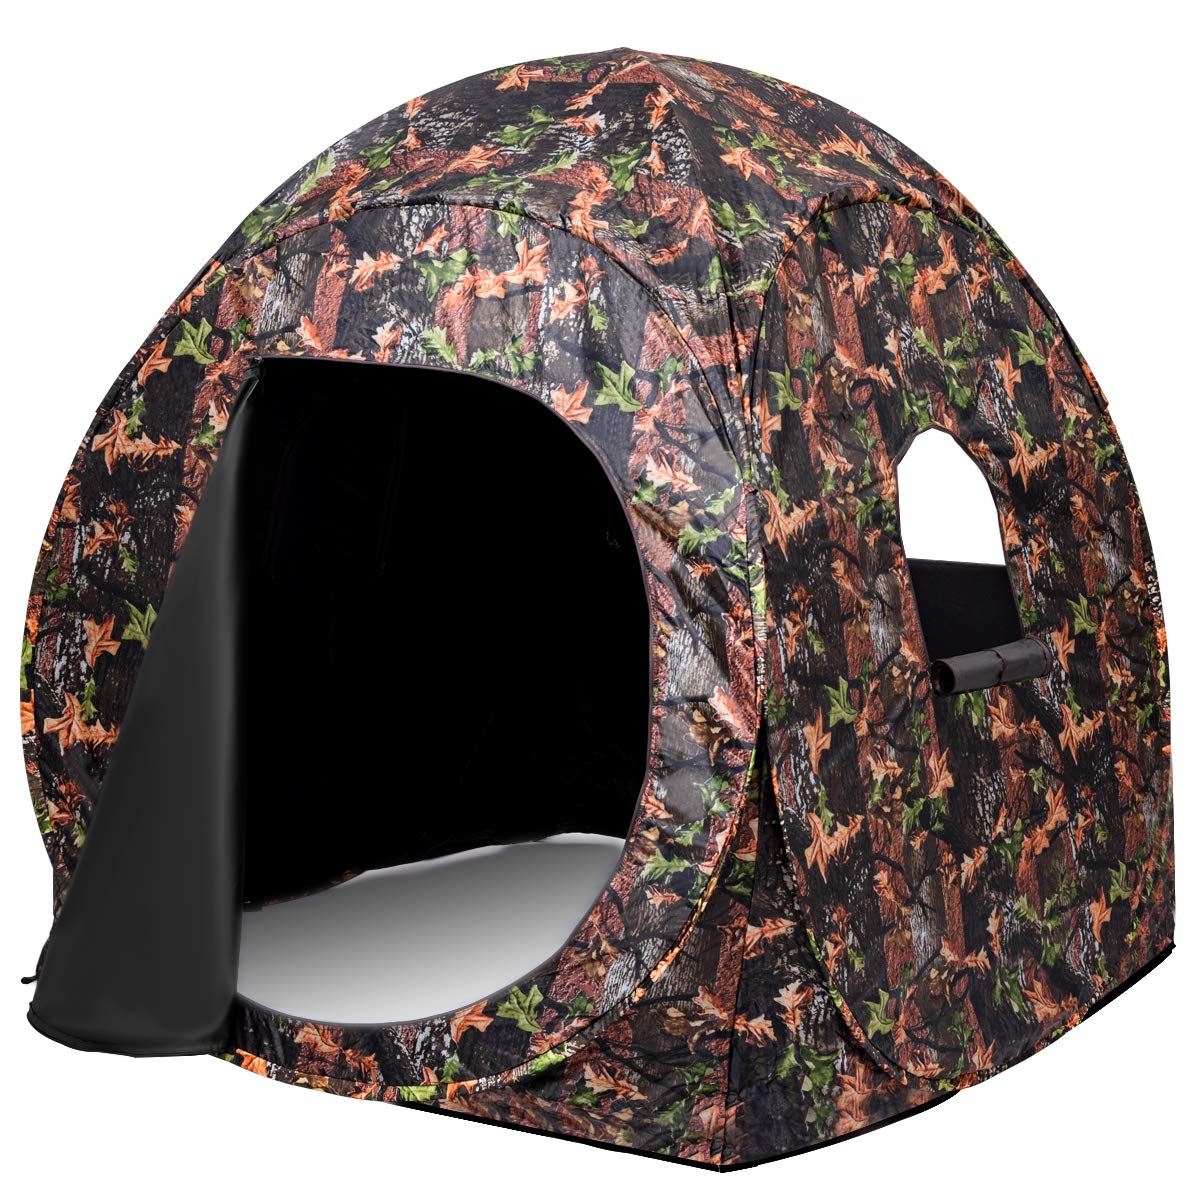 Tangkula Hunting Tent Portable Hunting Blind Pop Up Ground Blind 2-3 People Camo Waterproof with Backpack Hunting Enclosure